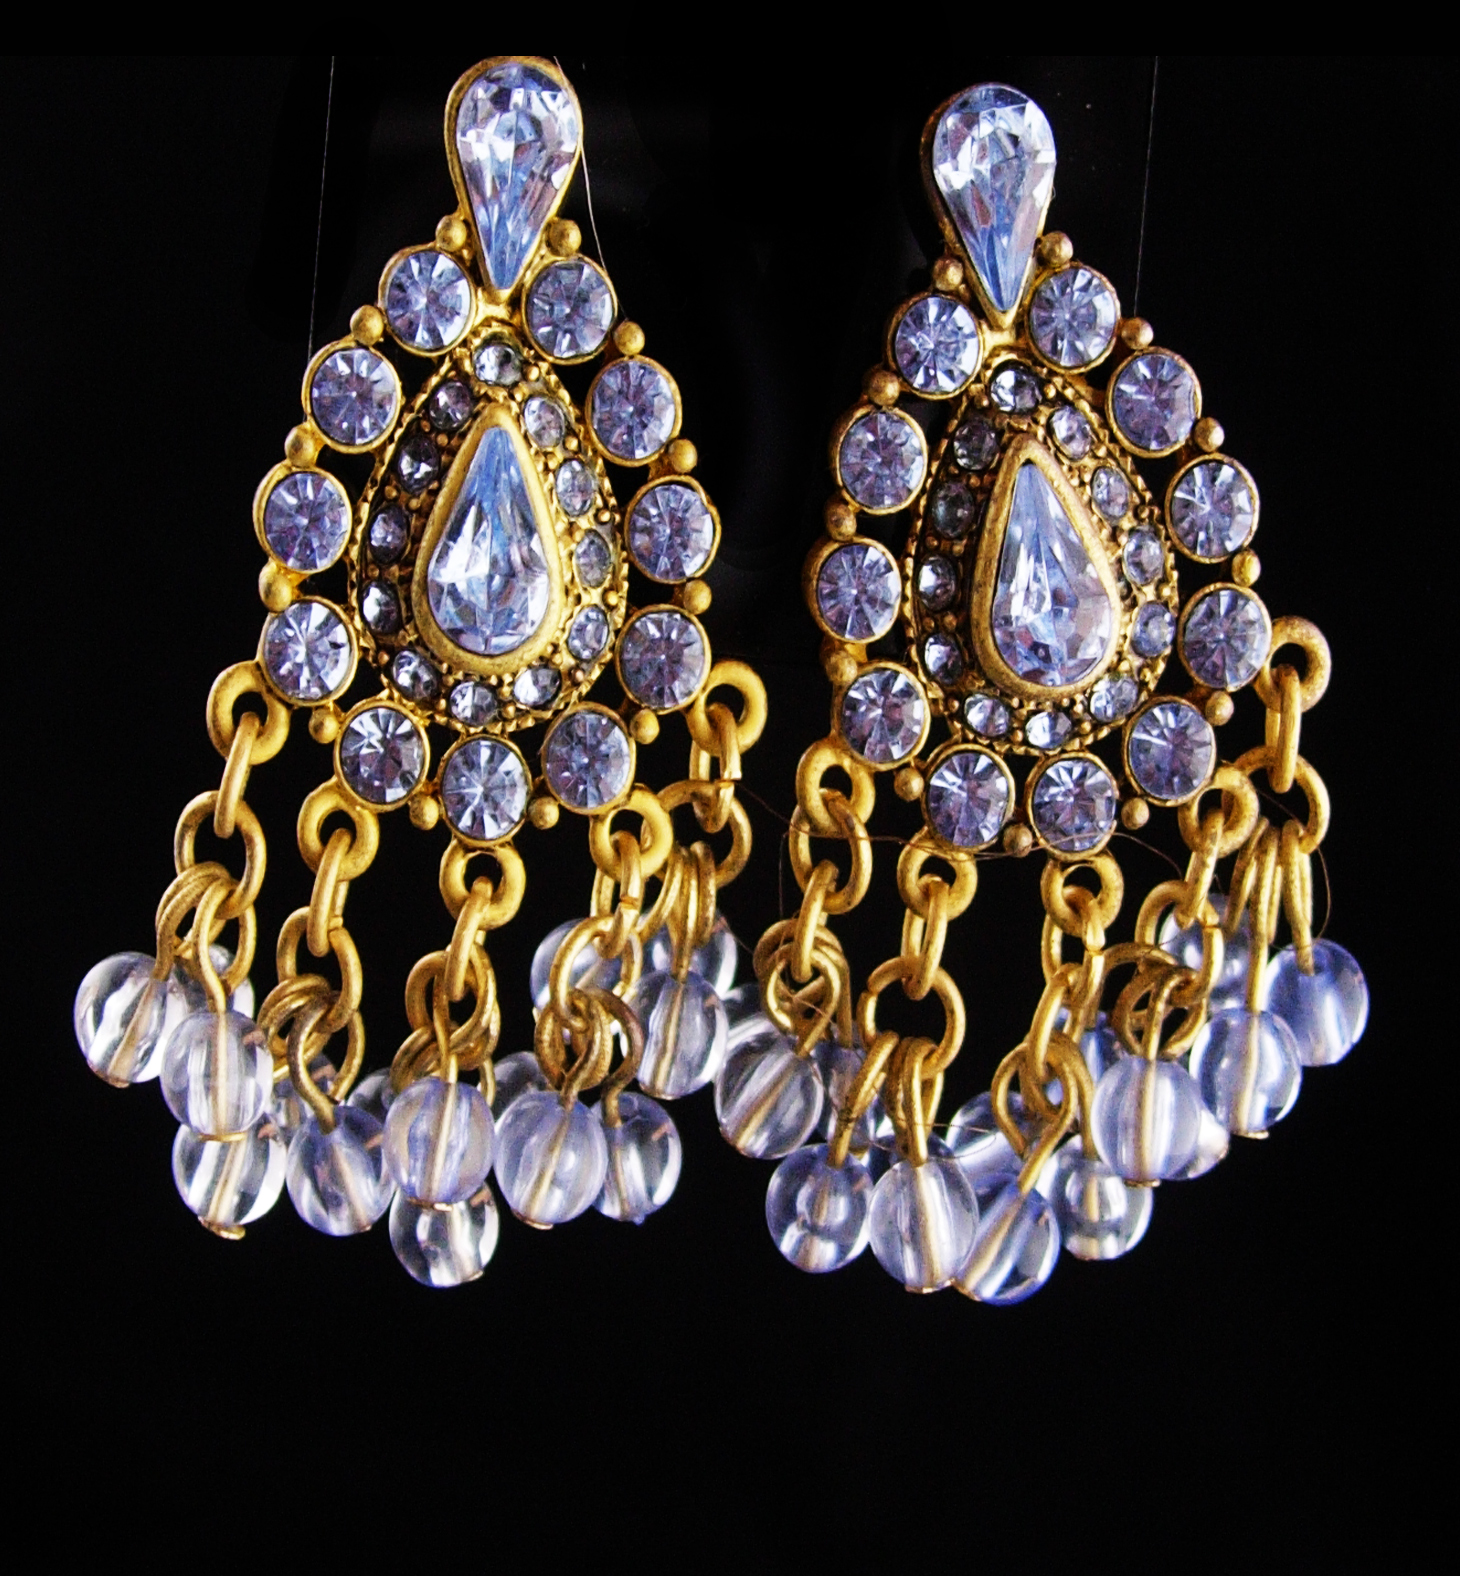 Primary image for Vintage Rhinestone earrings / Clip on chandelier set / Gypsy bohemian earrings /